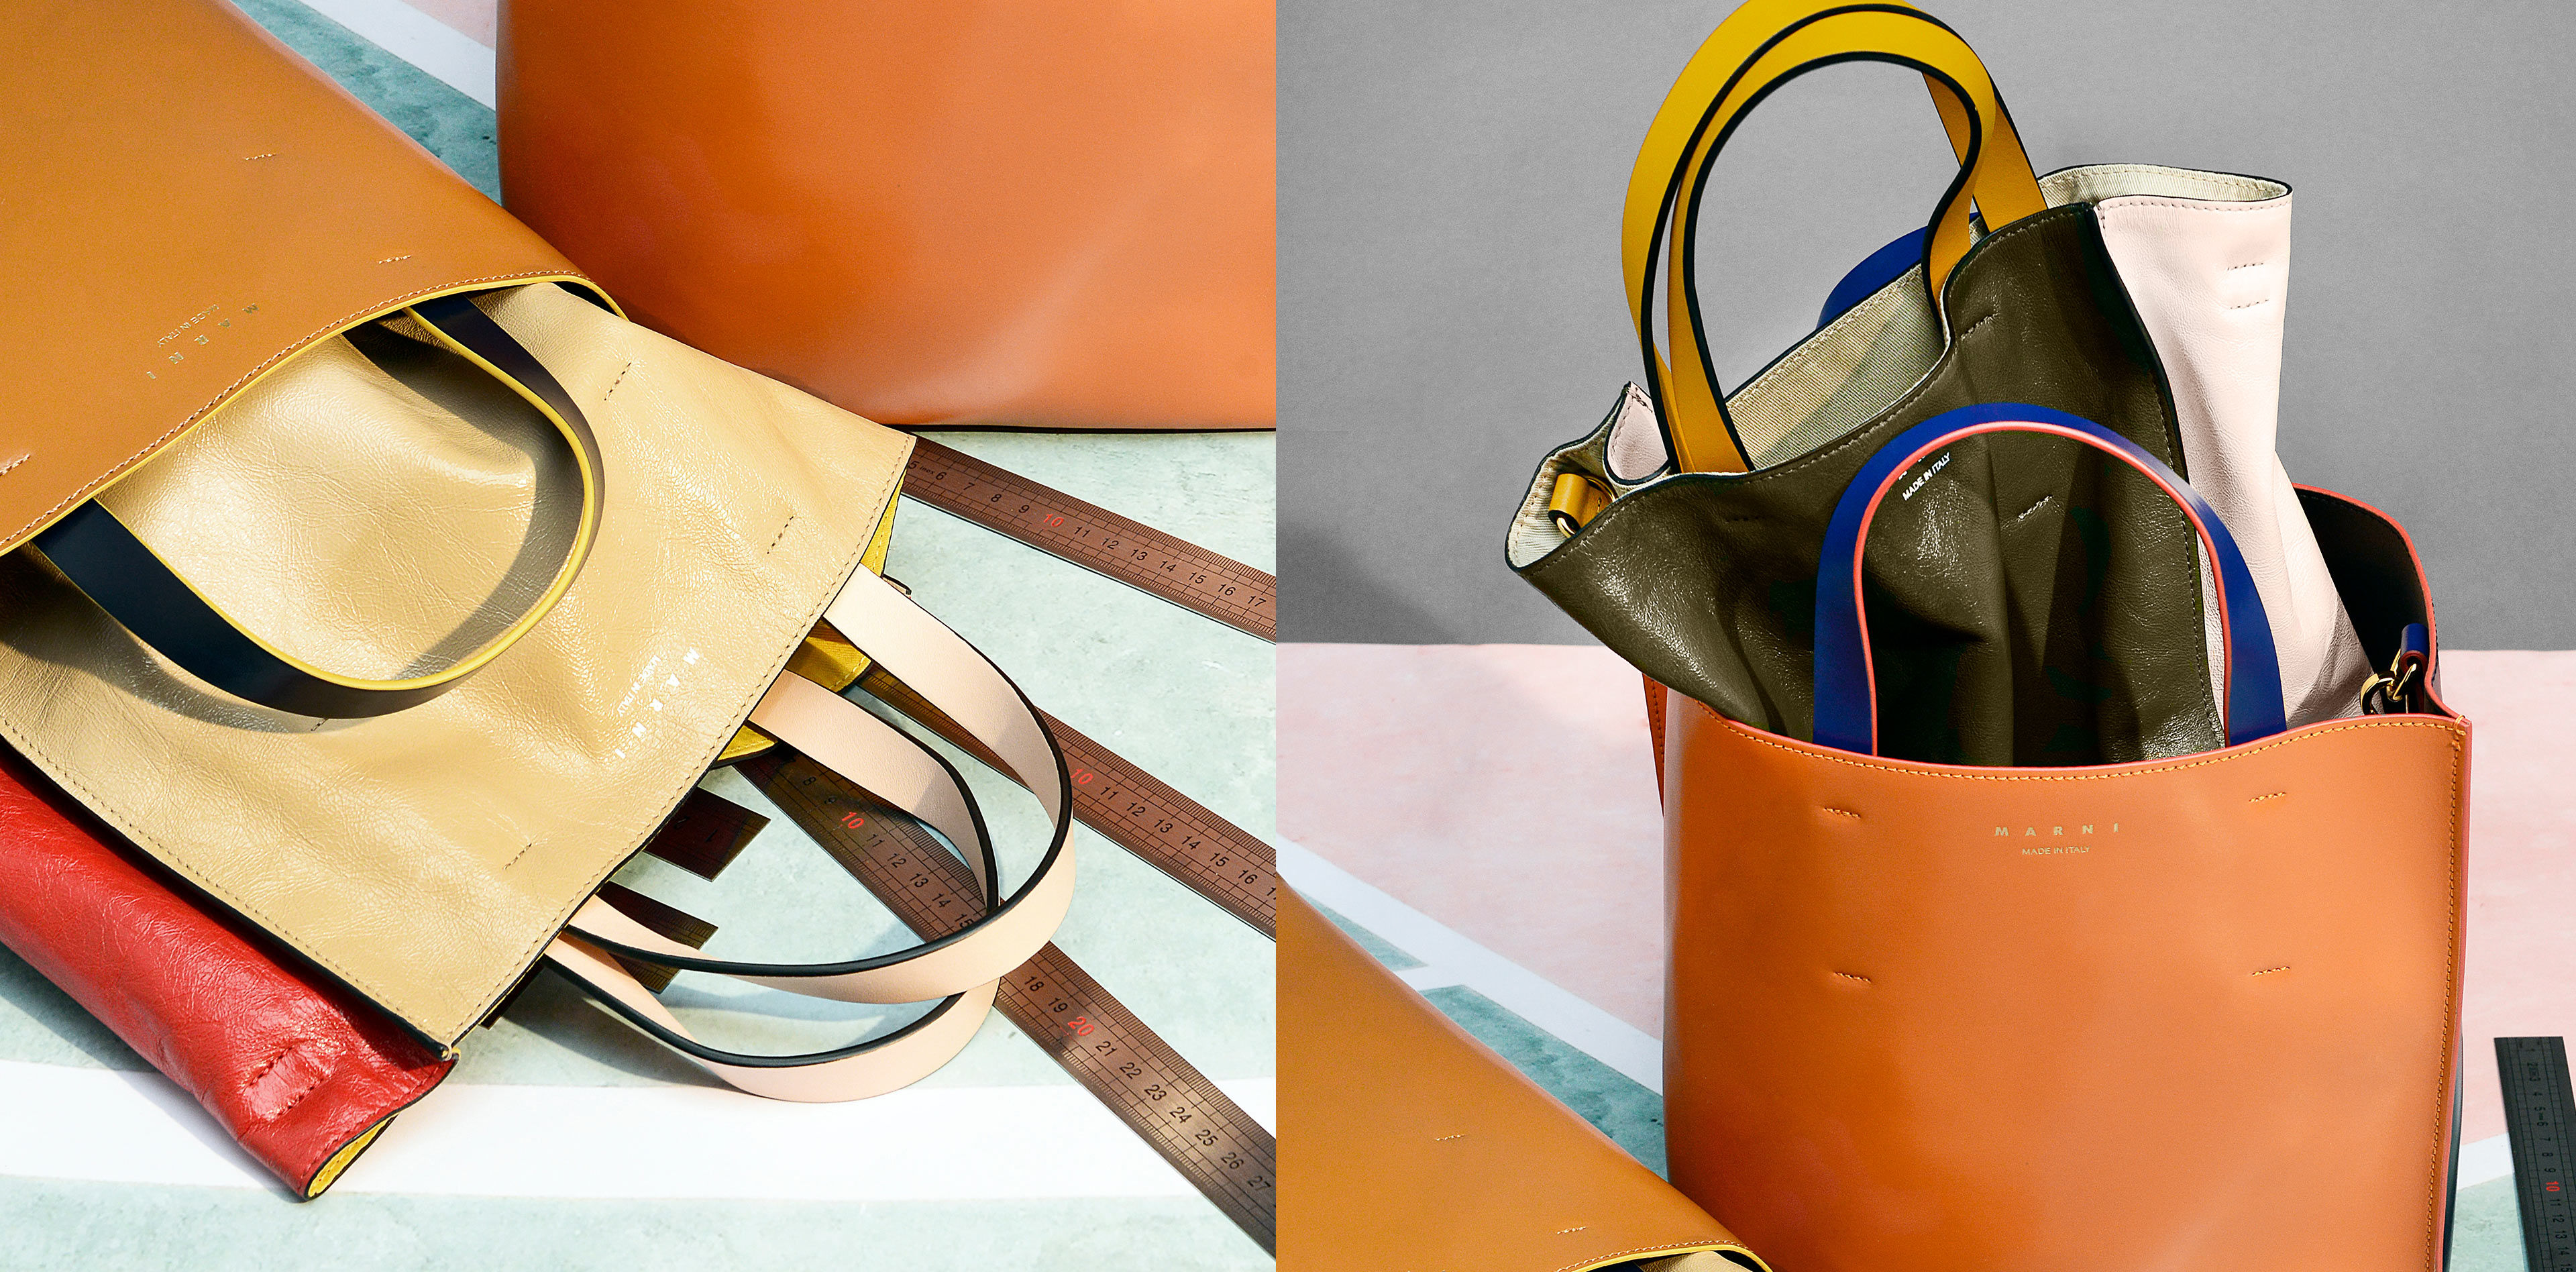 Brown and red Museo Bags from the Resort 2020 Collection